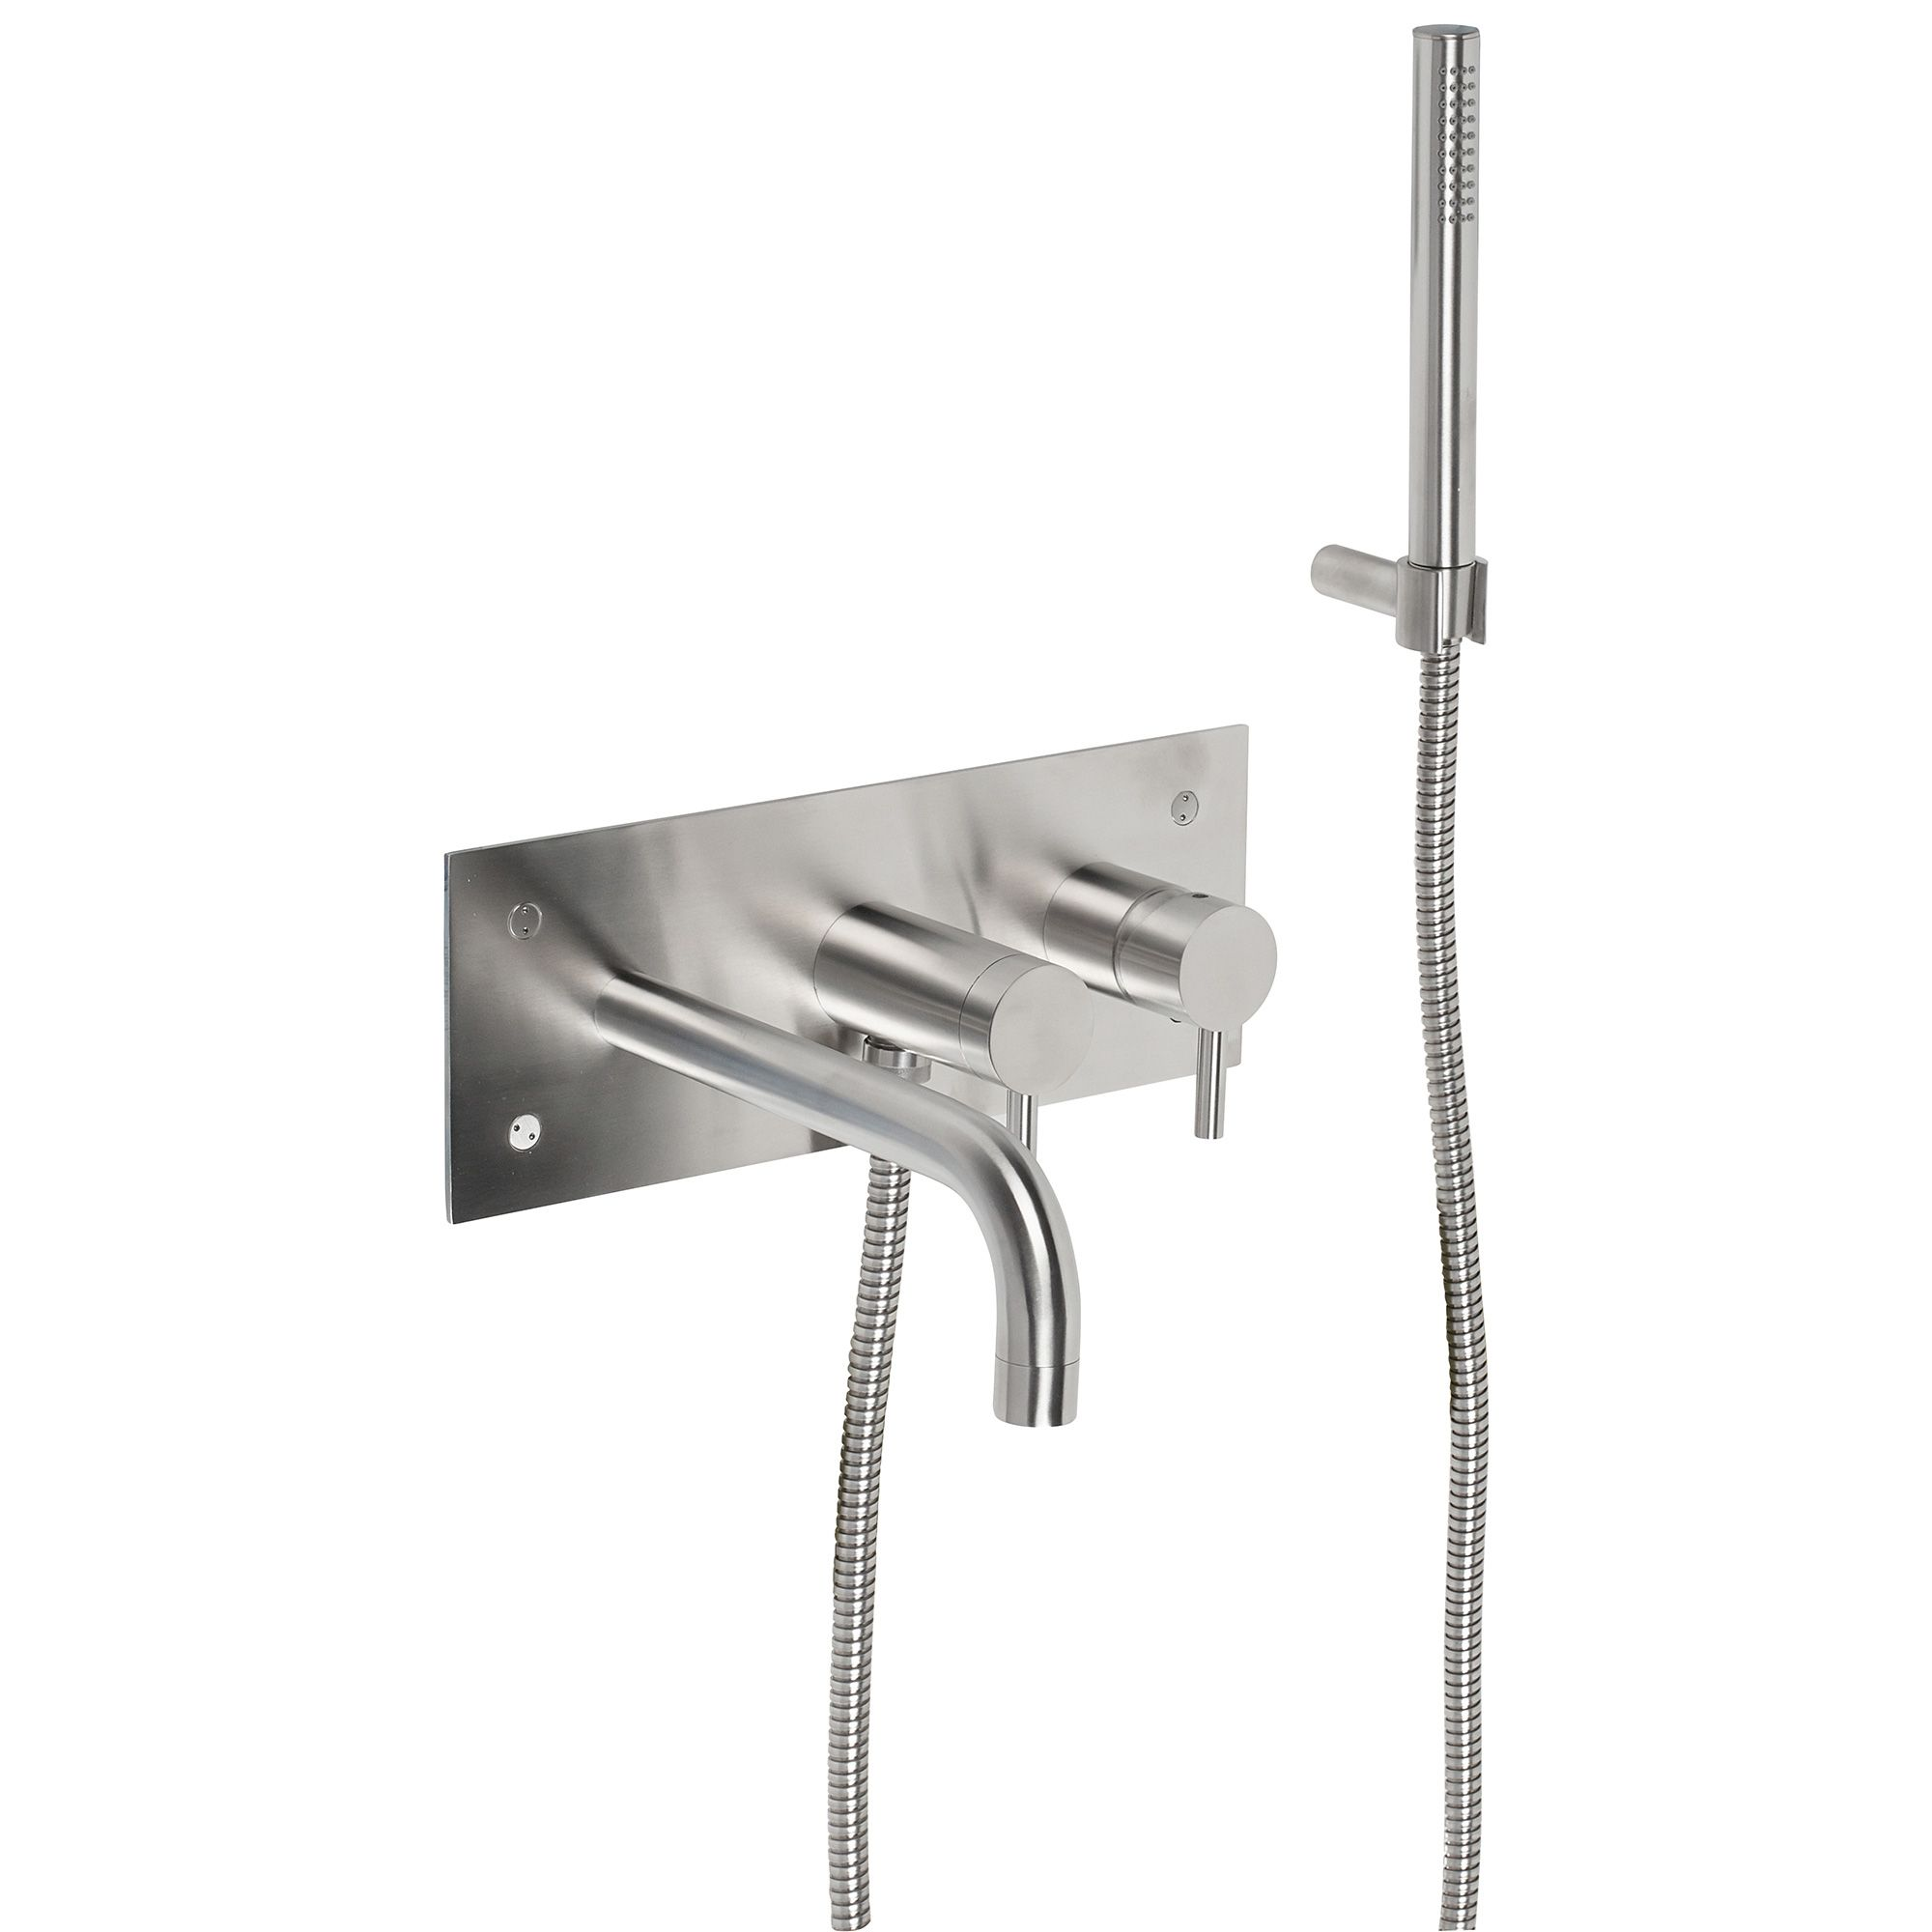 Hudson Wall mounted bath/shower mixer